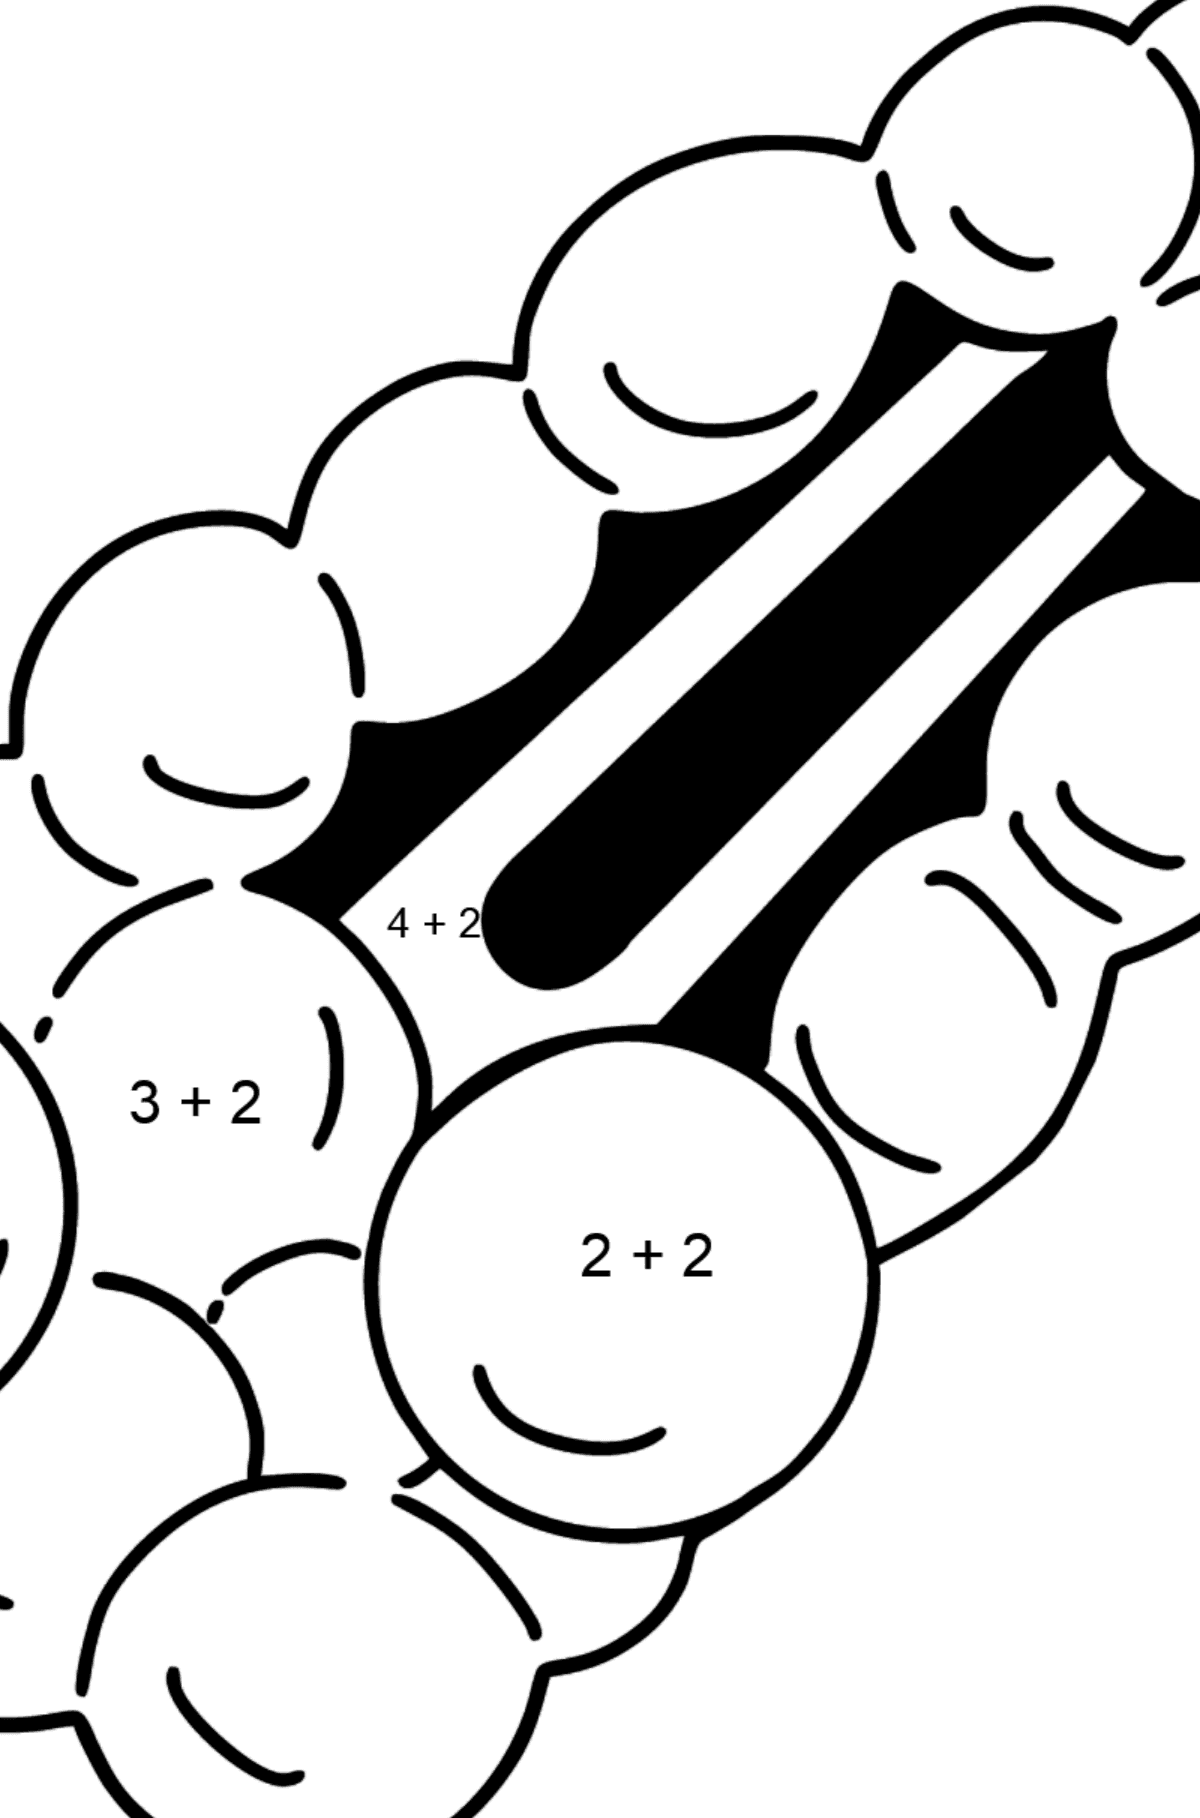 Barrette coloring page - Math Coloring - Addition for Kids